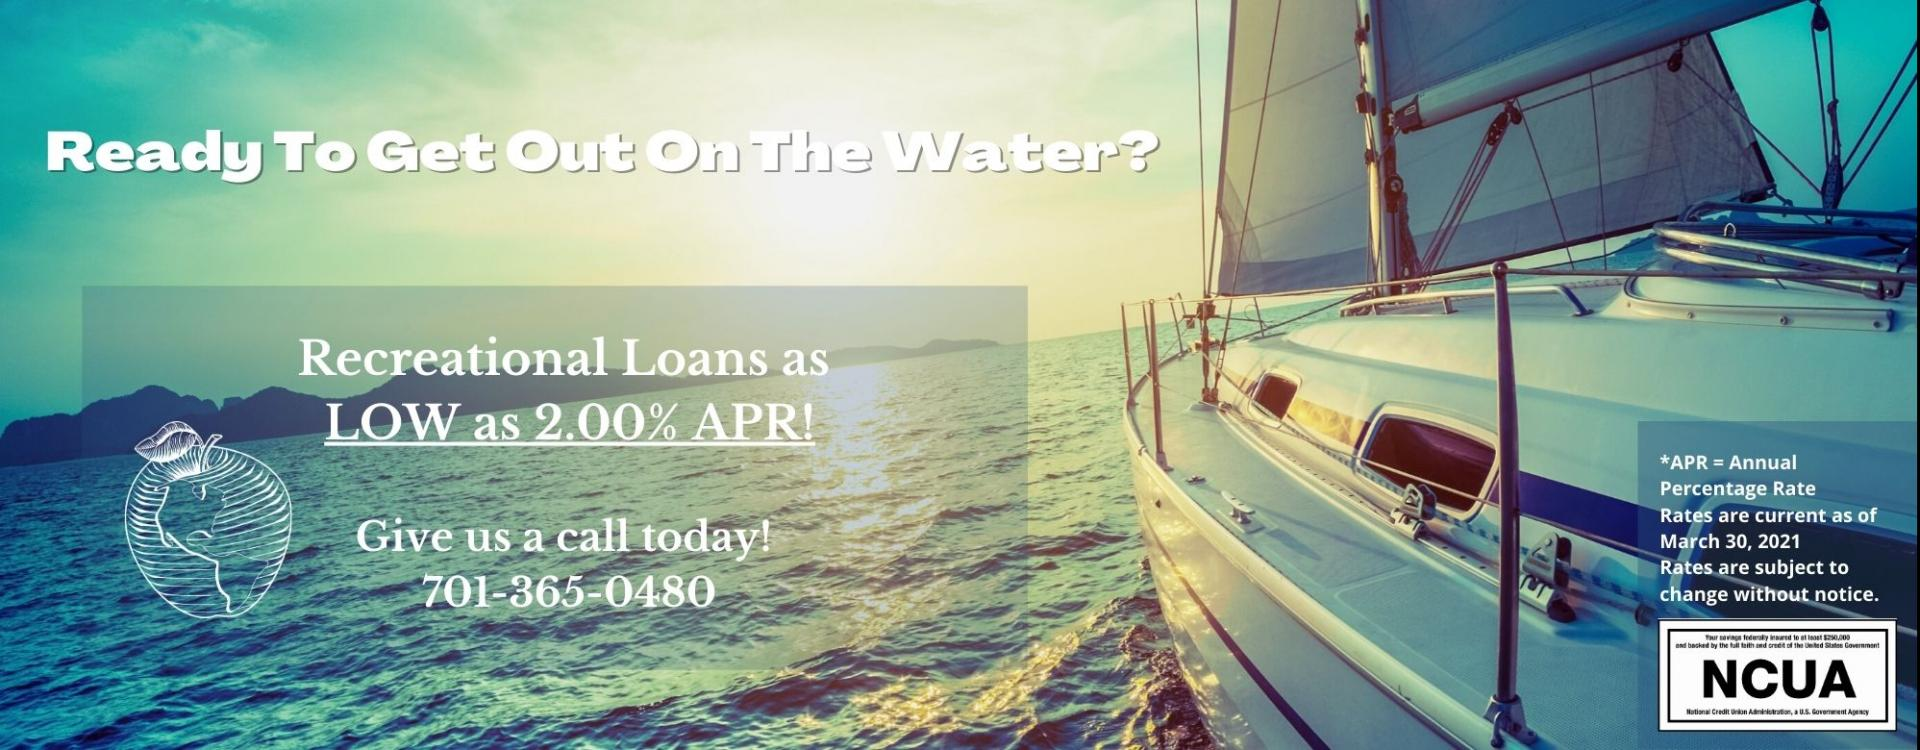 Ready to get out on the water? Recreational loans as low as 2.00% APR.  Give us a call today! 701-365-0480